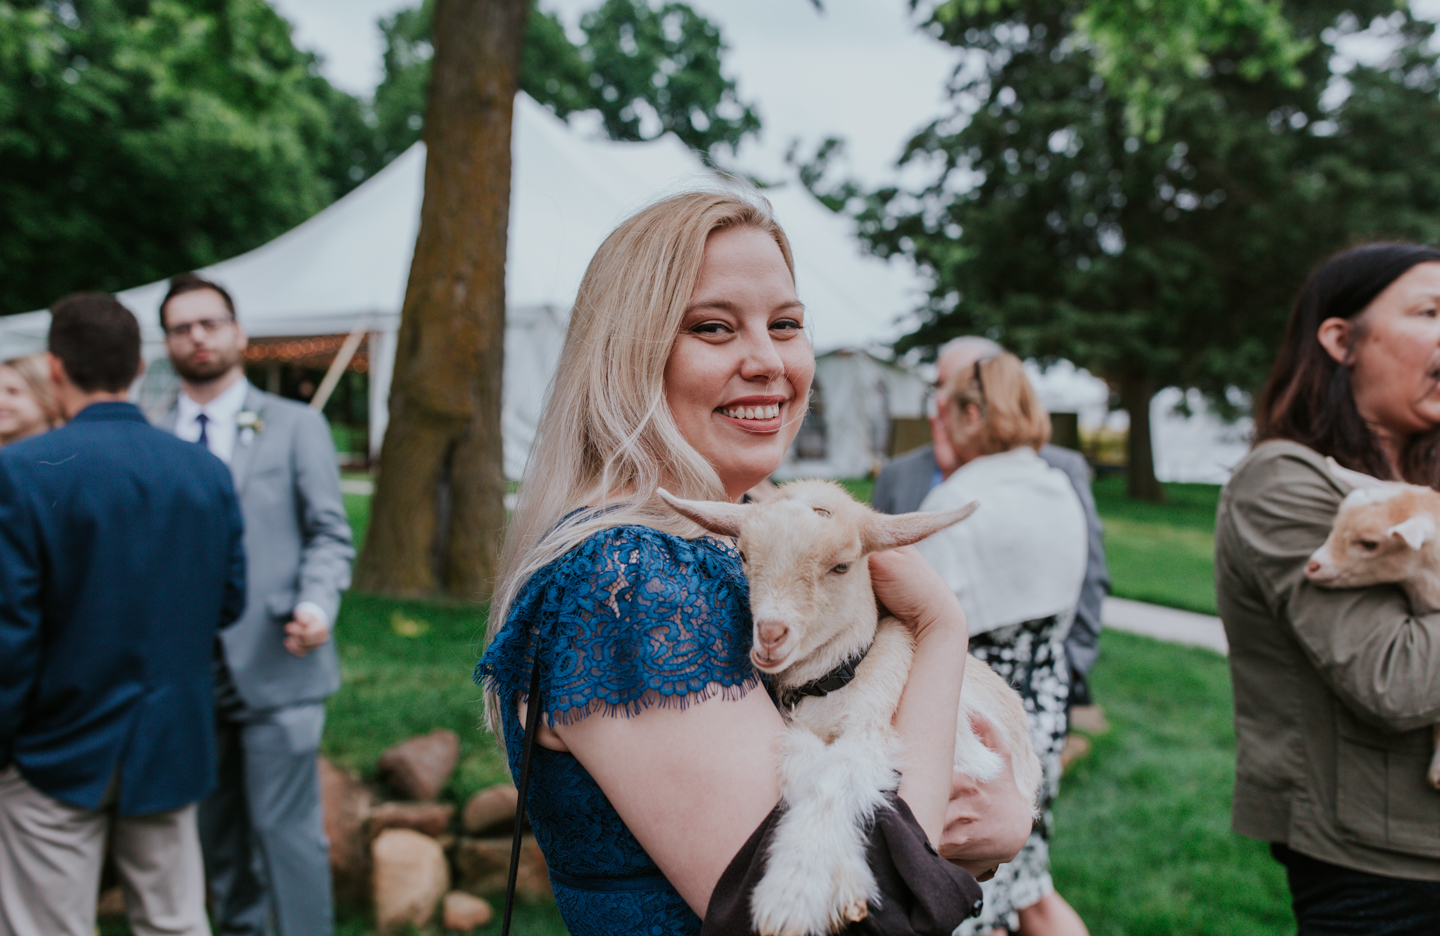 LGP-zingermans-cornman-farms-summer-farm-wedding-goats-032.jpg